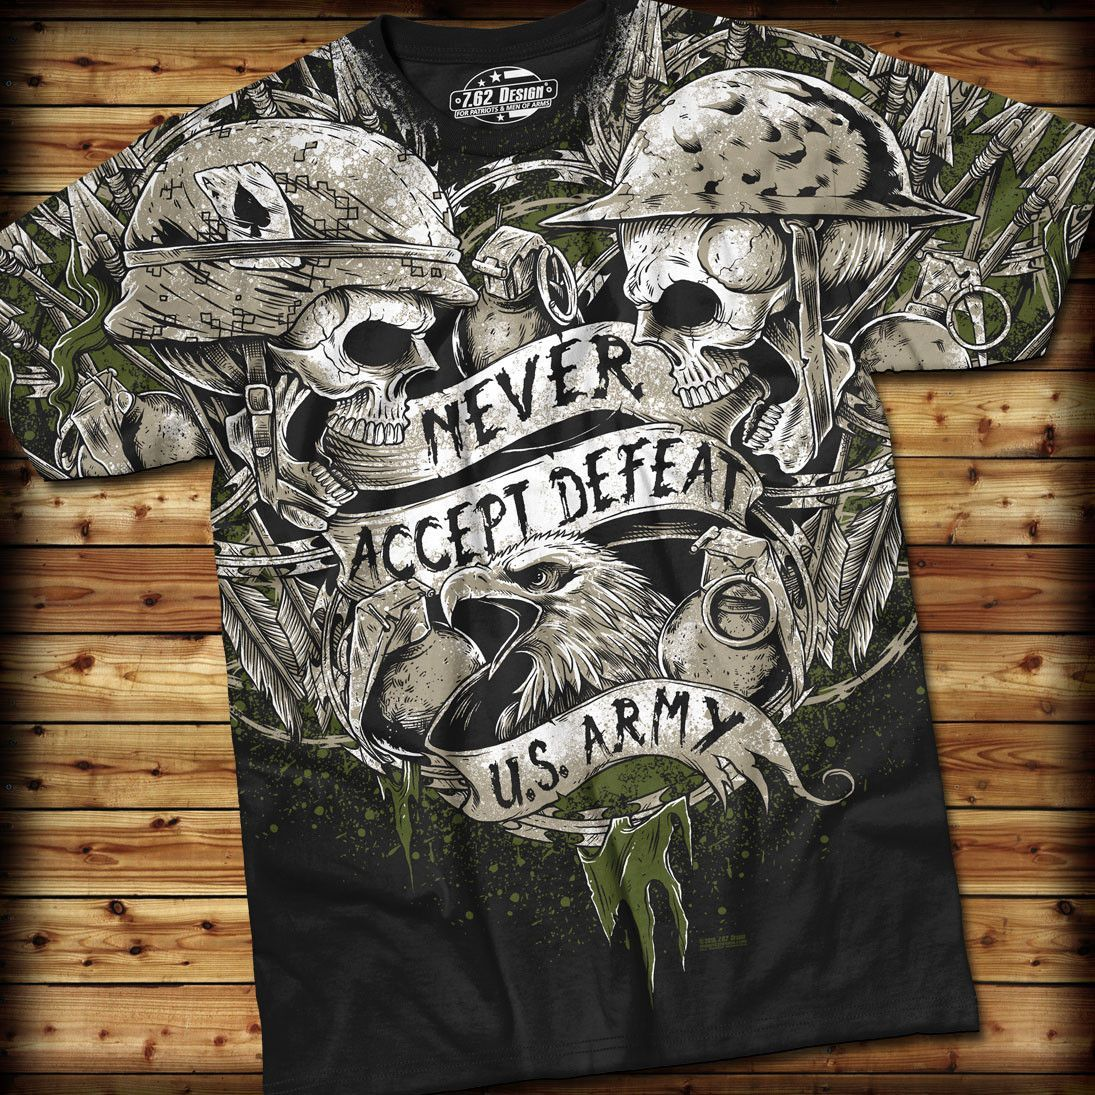 Shirt design graphics - Army Never Accept Defeat T Shirt 7 62 Design Graphic Military Tee Shirt